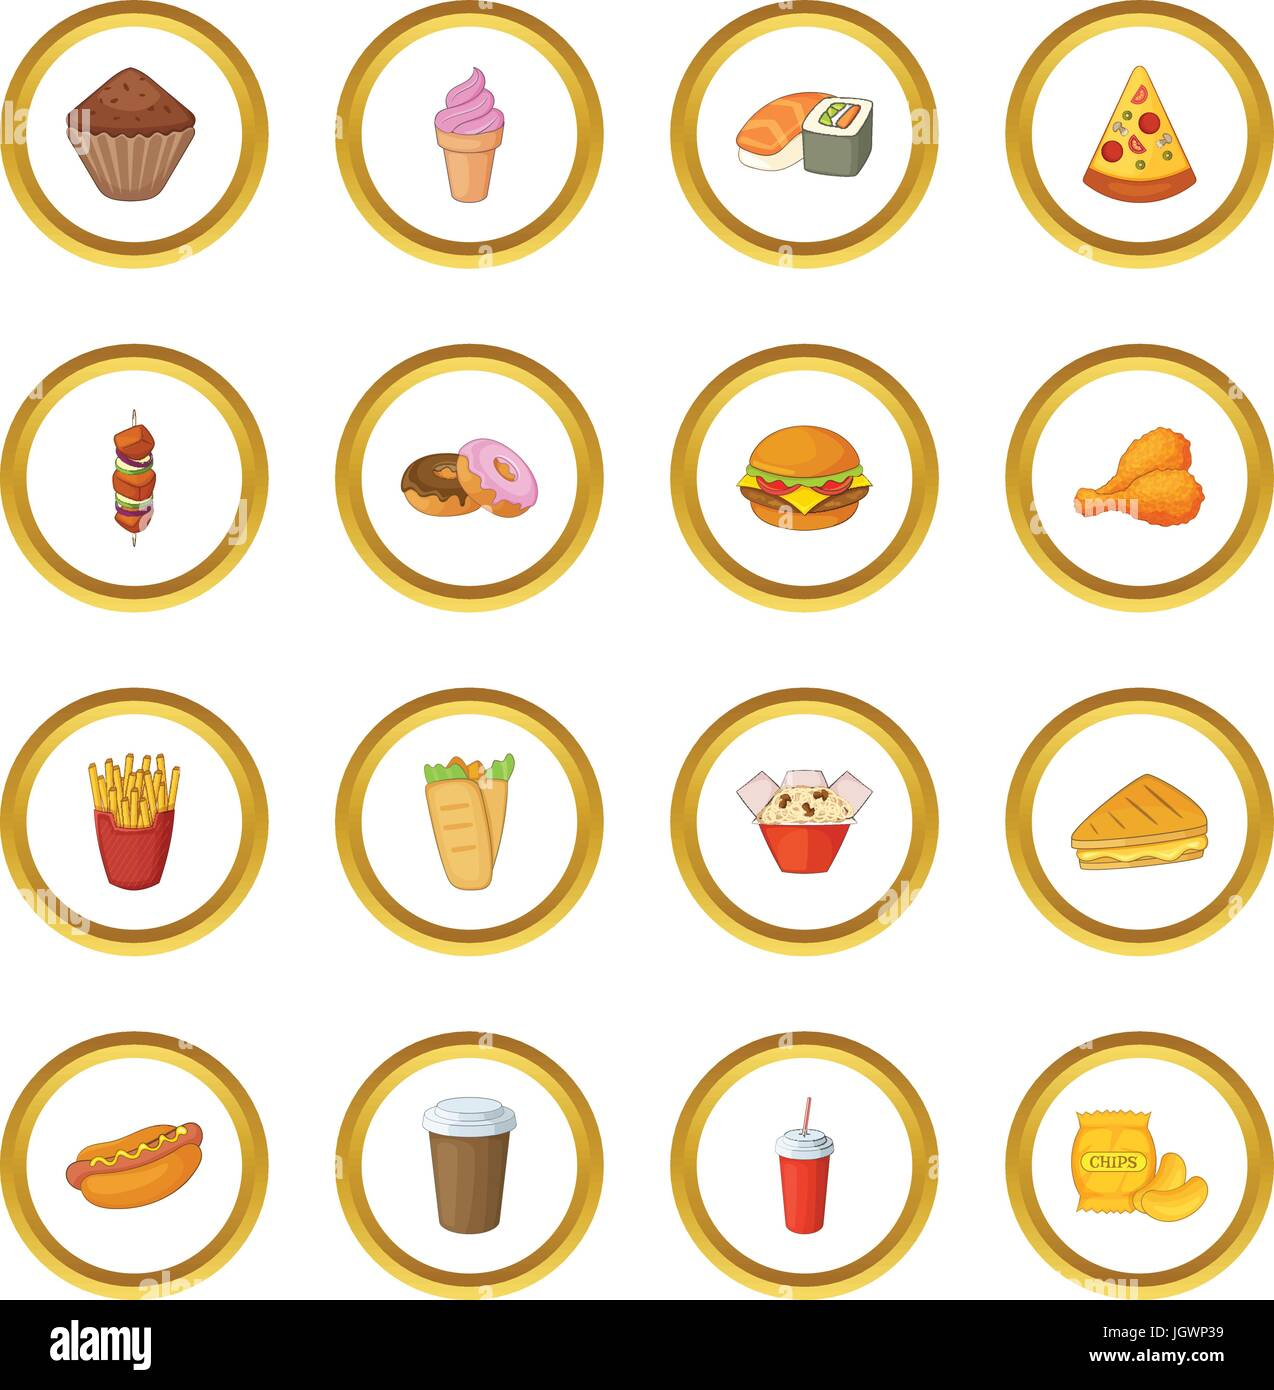 Fast food icons circle - Stock Vector